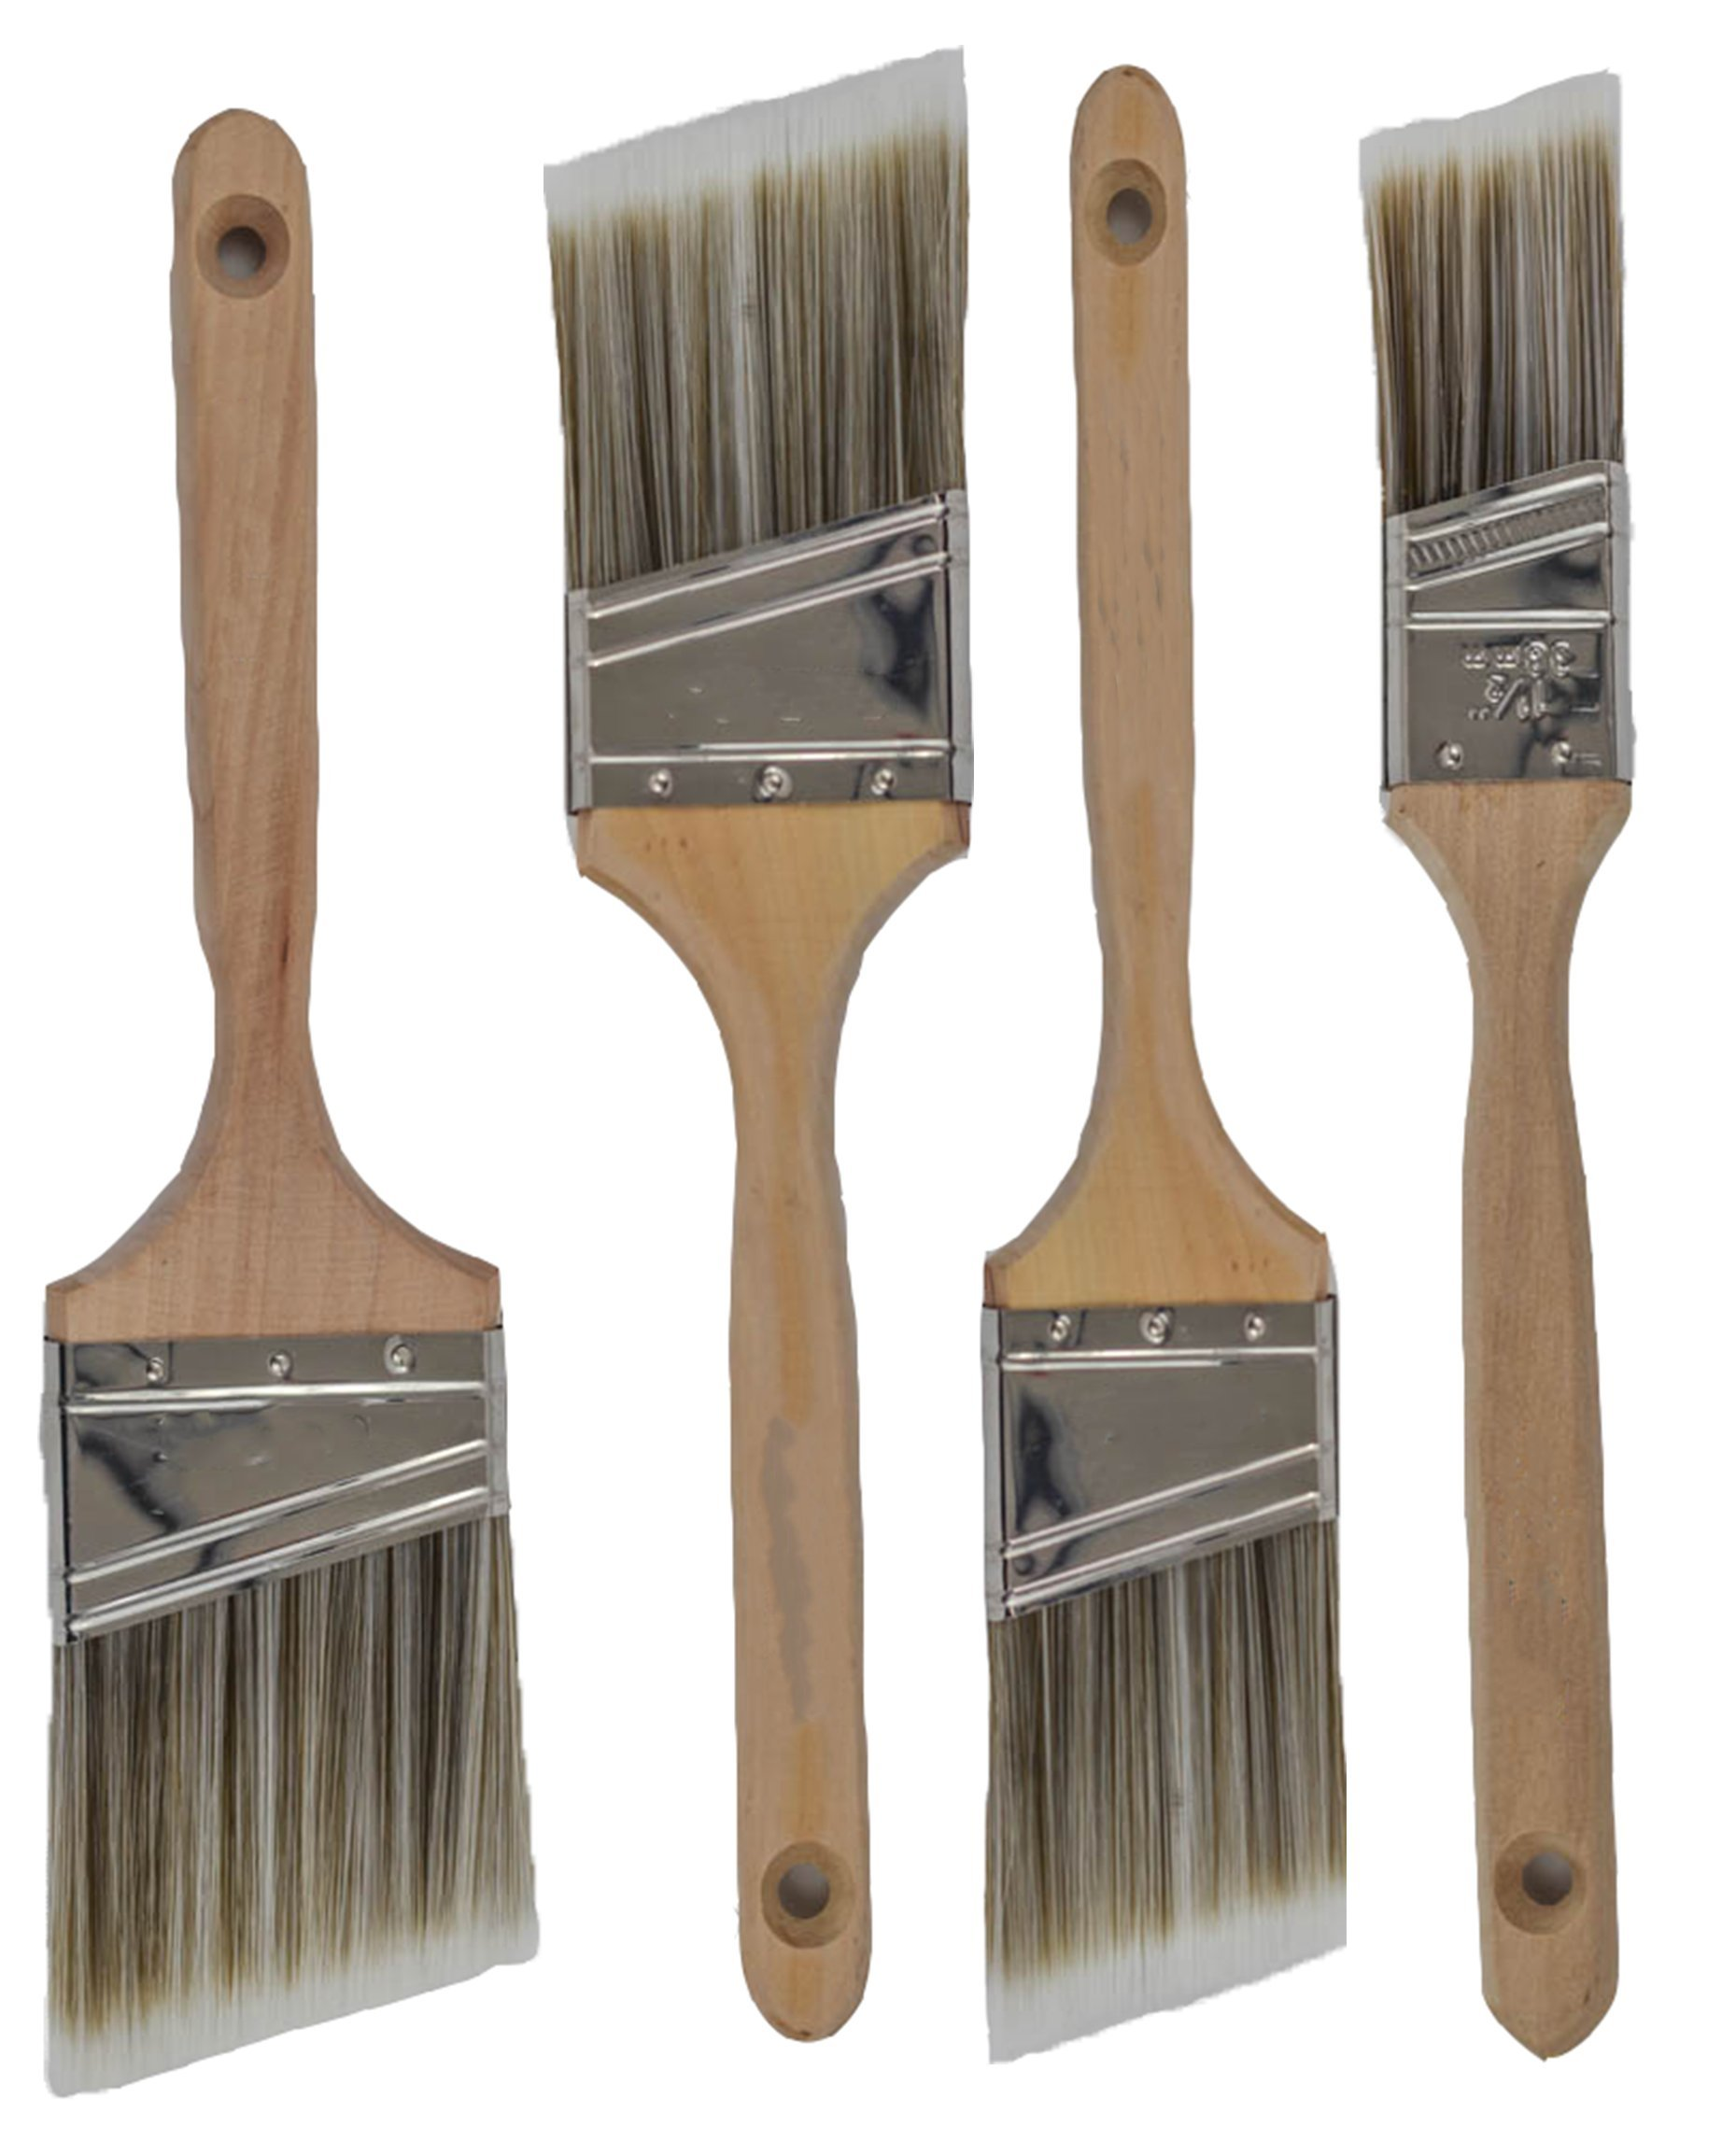 Pro-Grade Premium Wall/Trim House Paint Brush Set Great for Professional Painter And Home Owners Painting Brushes For Cabinet Decks Fences Interior Exterior & Commercial Paintbrush. (4Pk)